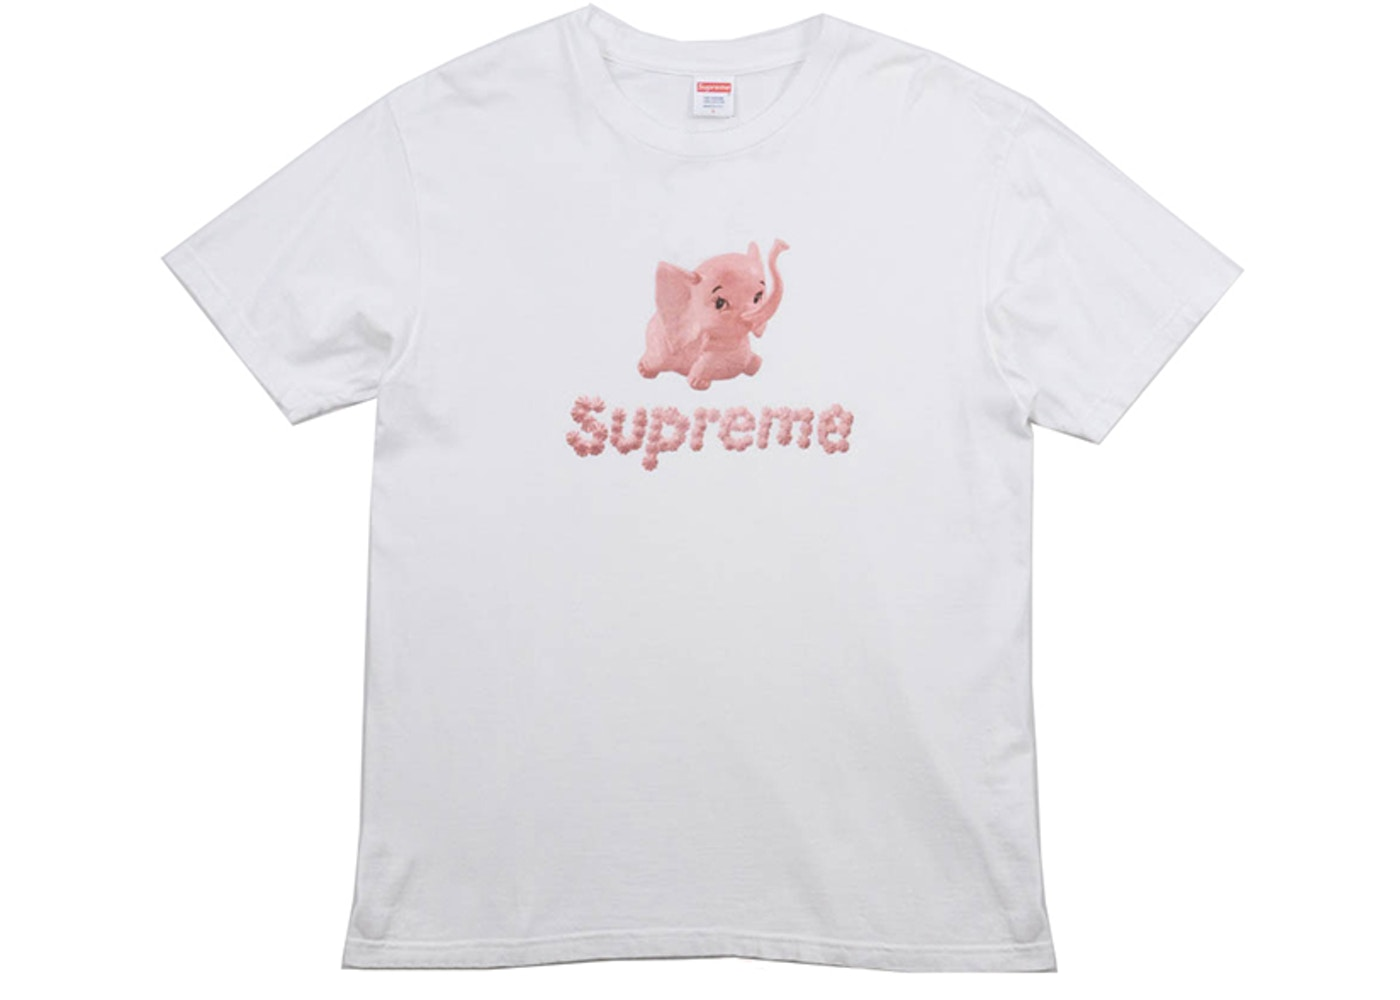 fc5acba1 Buy & Sell Supreme Streetwear - New Lowest Asks